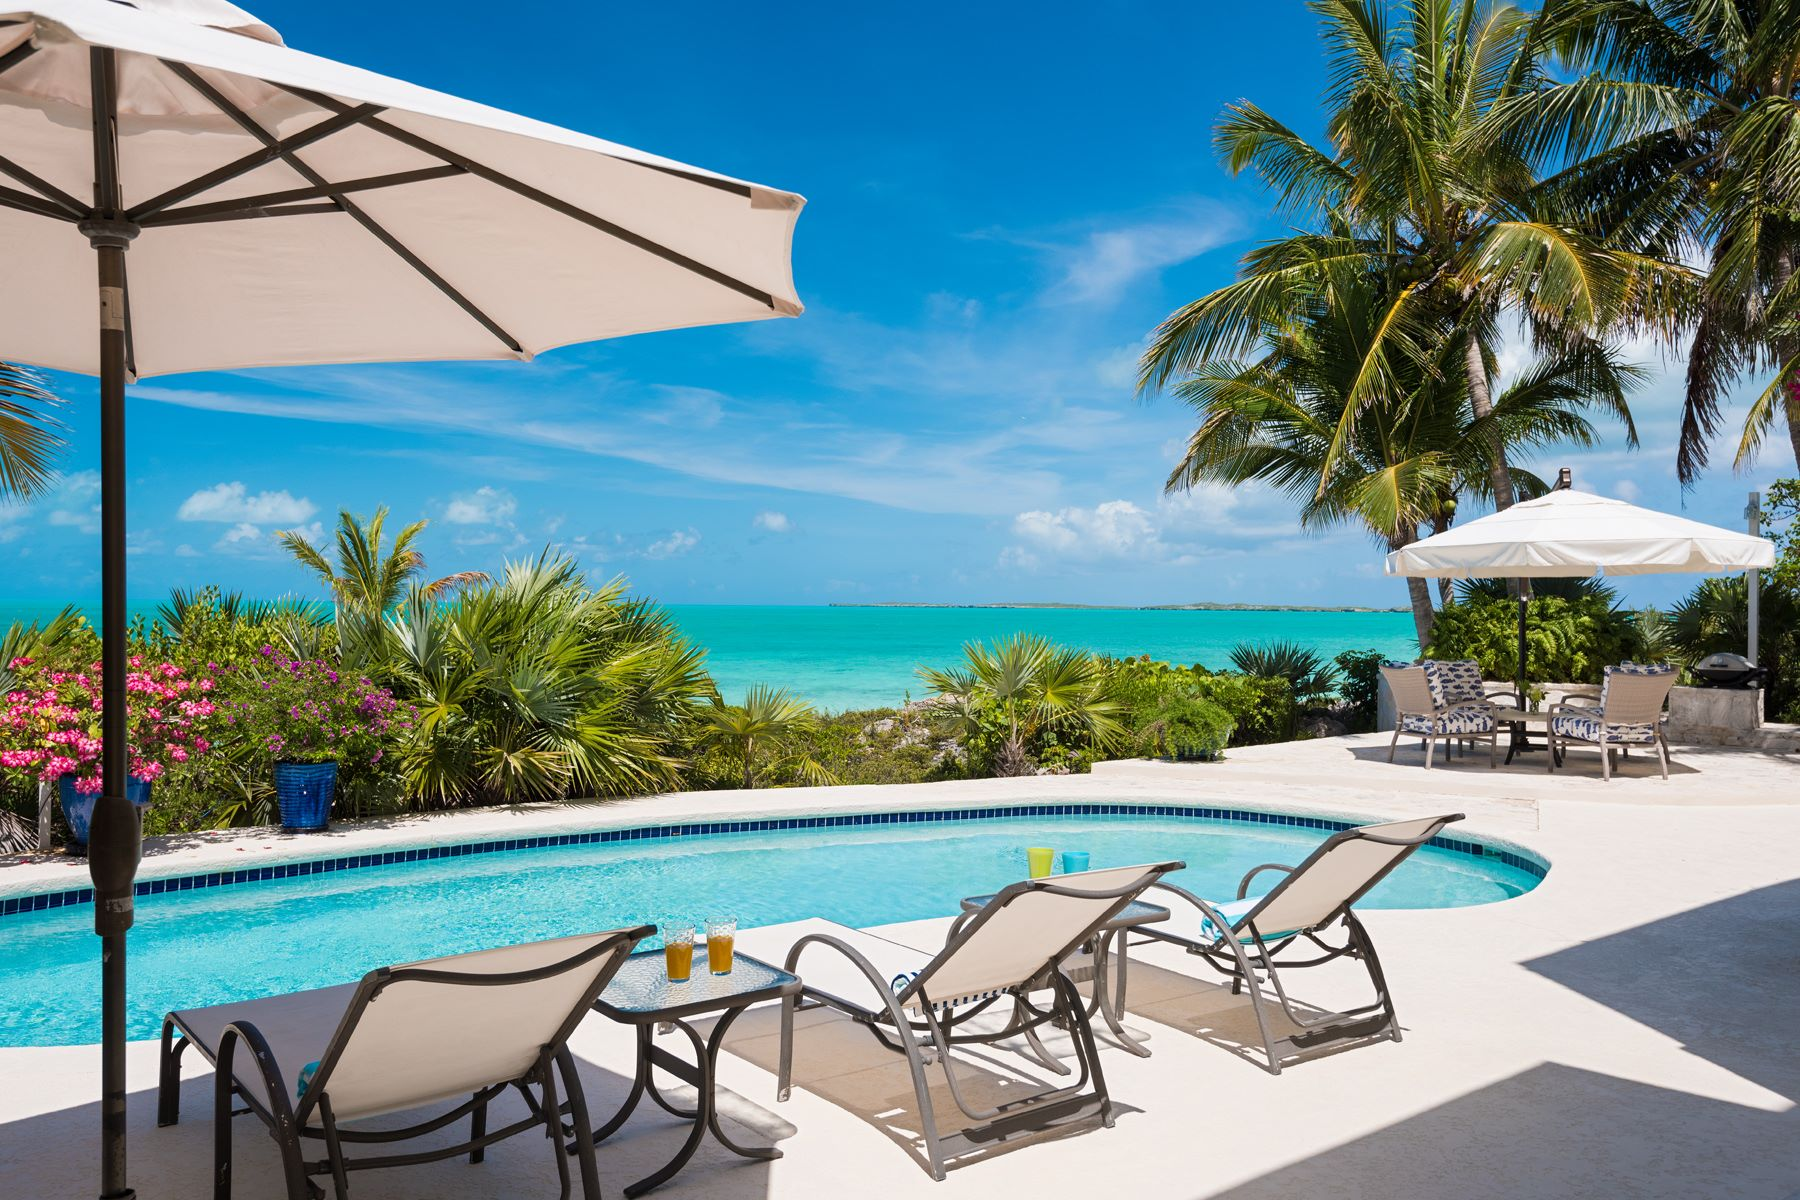 Single Family Home for Sale at Blue Waters Oceanfront Silly Creek, TKCA 1ZZ Turks And Caicos Islands